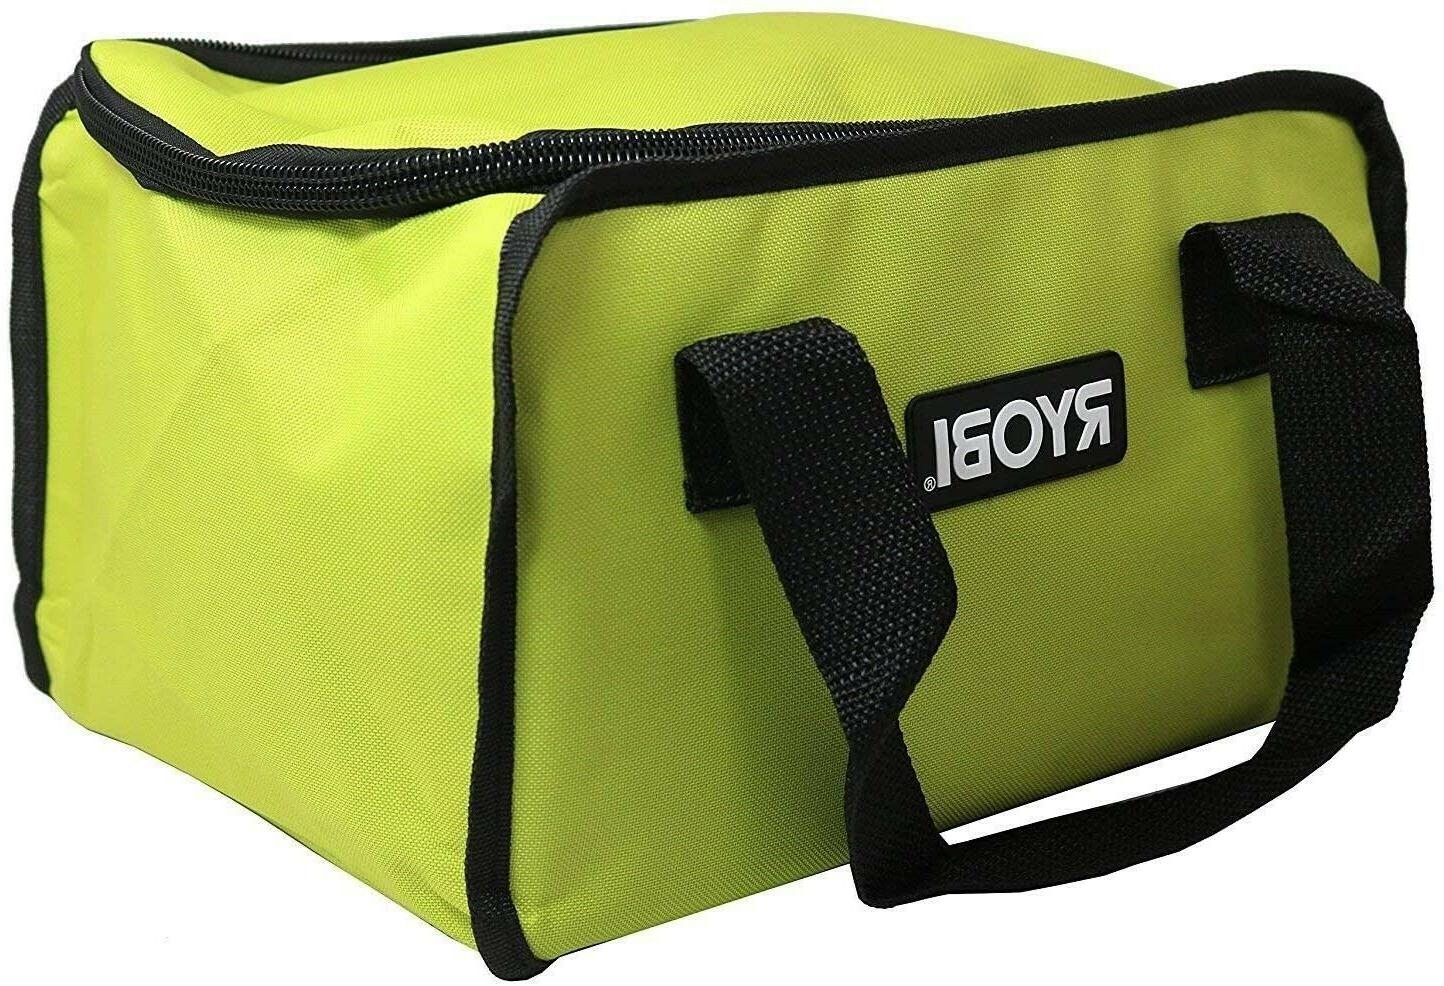 large tool bag yellow and green brand